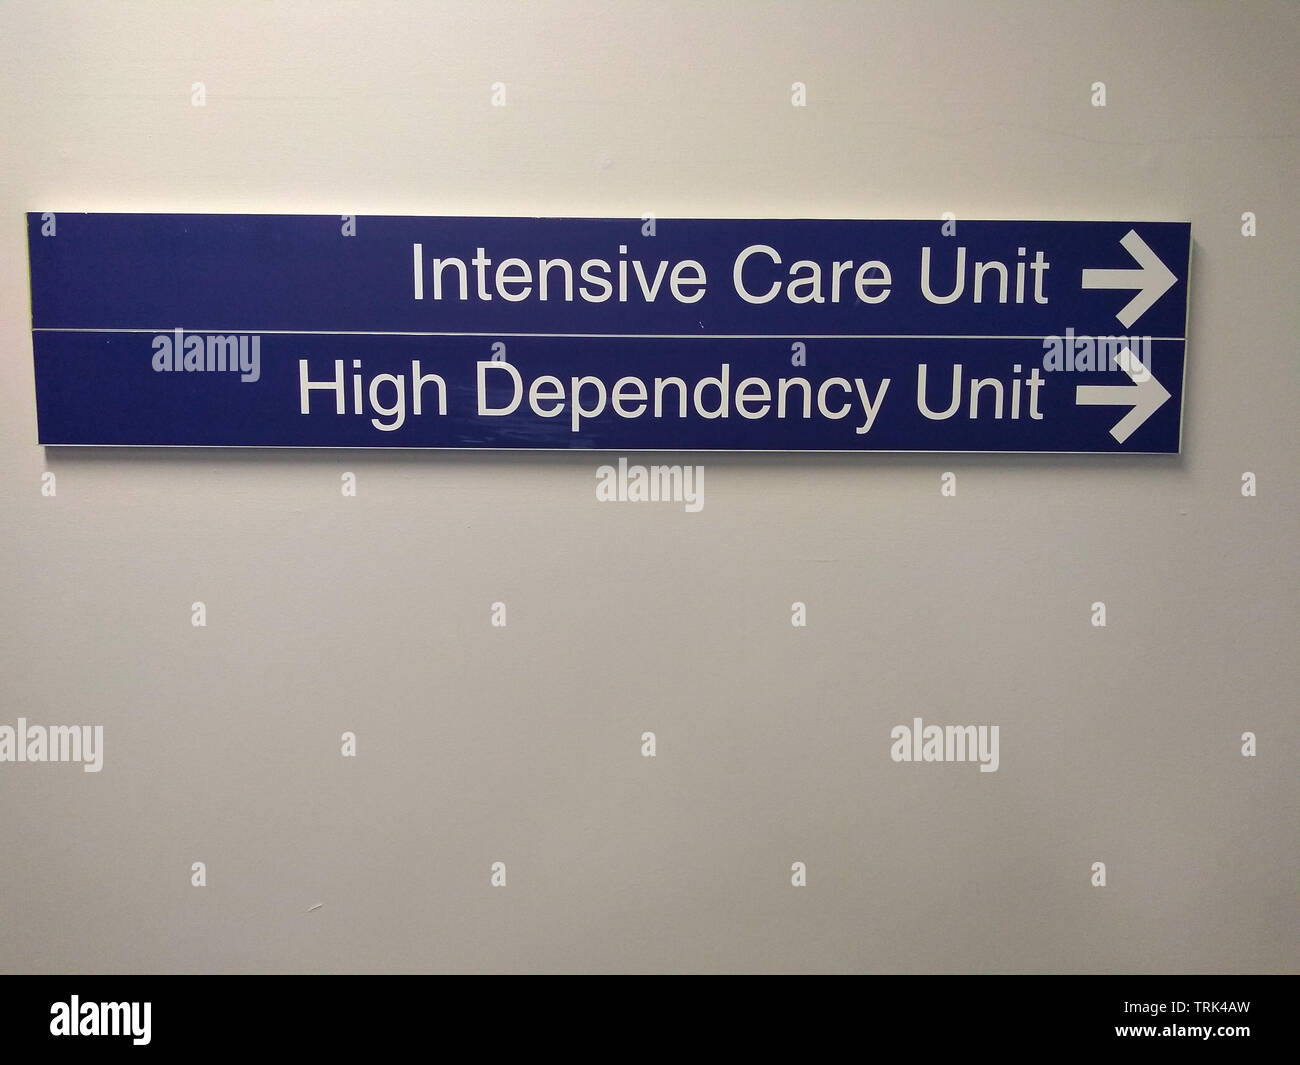 intensive care and high dependency directions sign in an Australian hospital - Stock Image